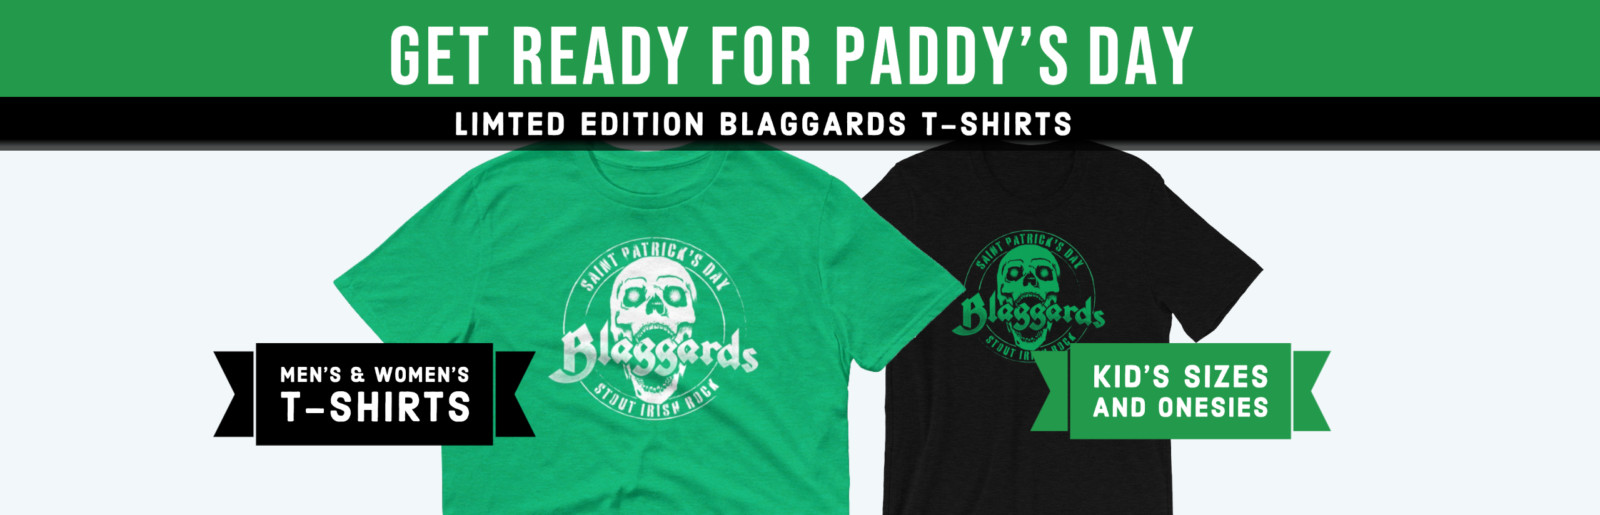 Paddy's Day T-Shirts